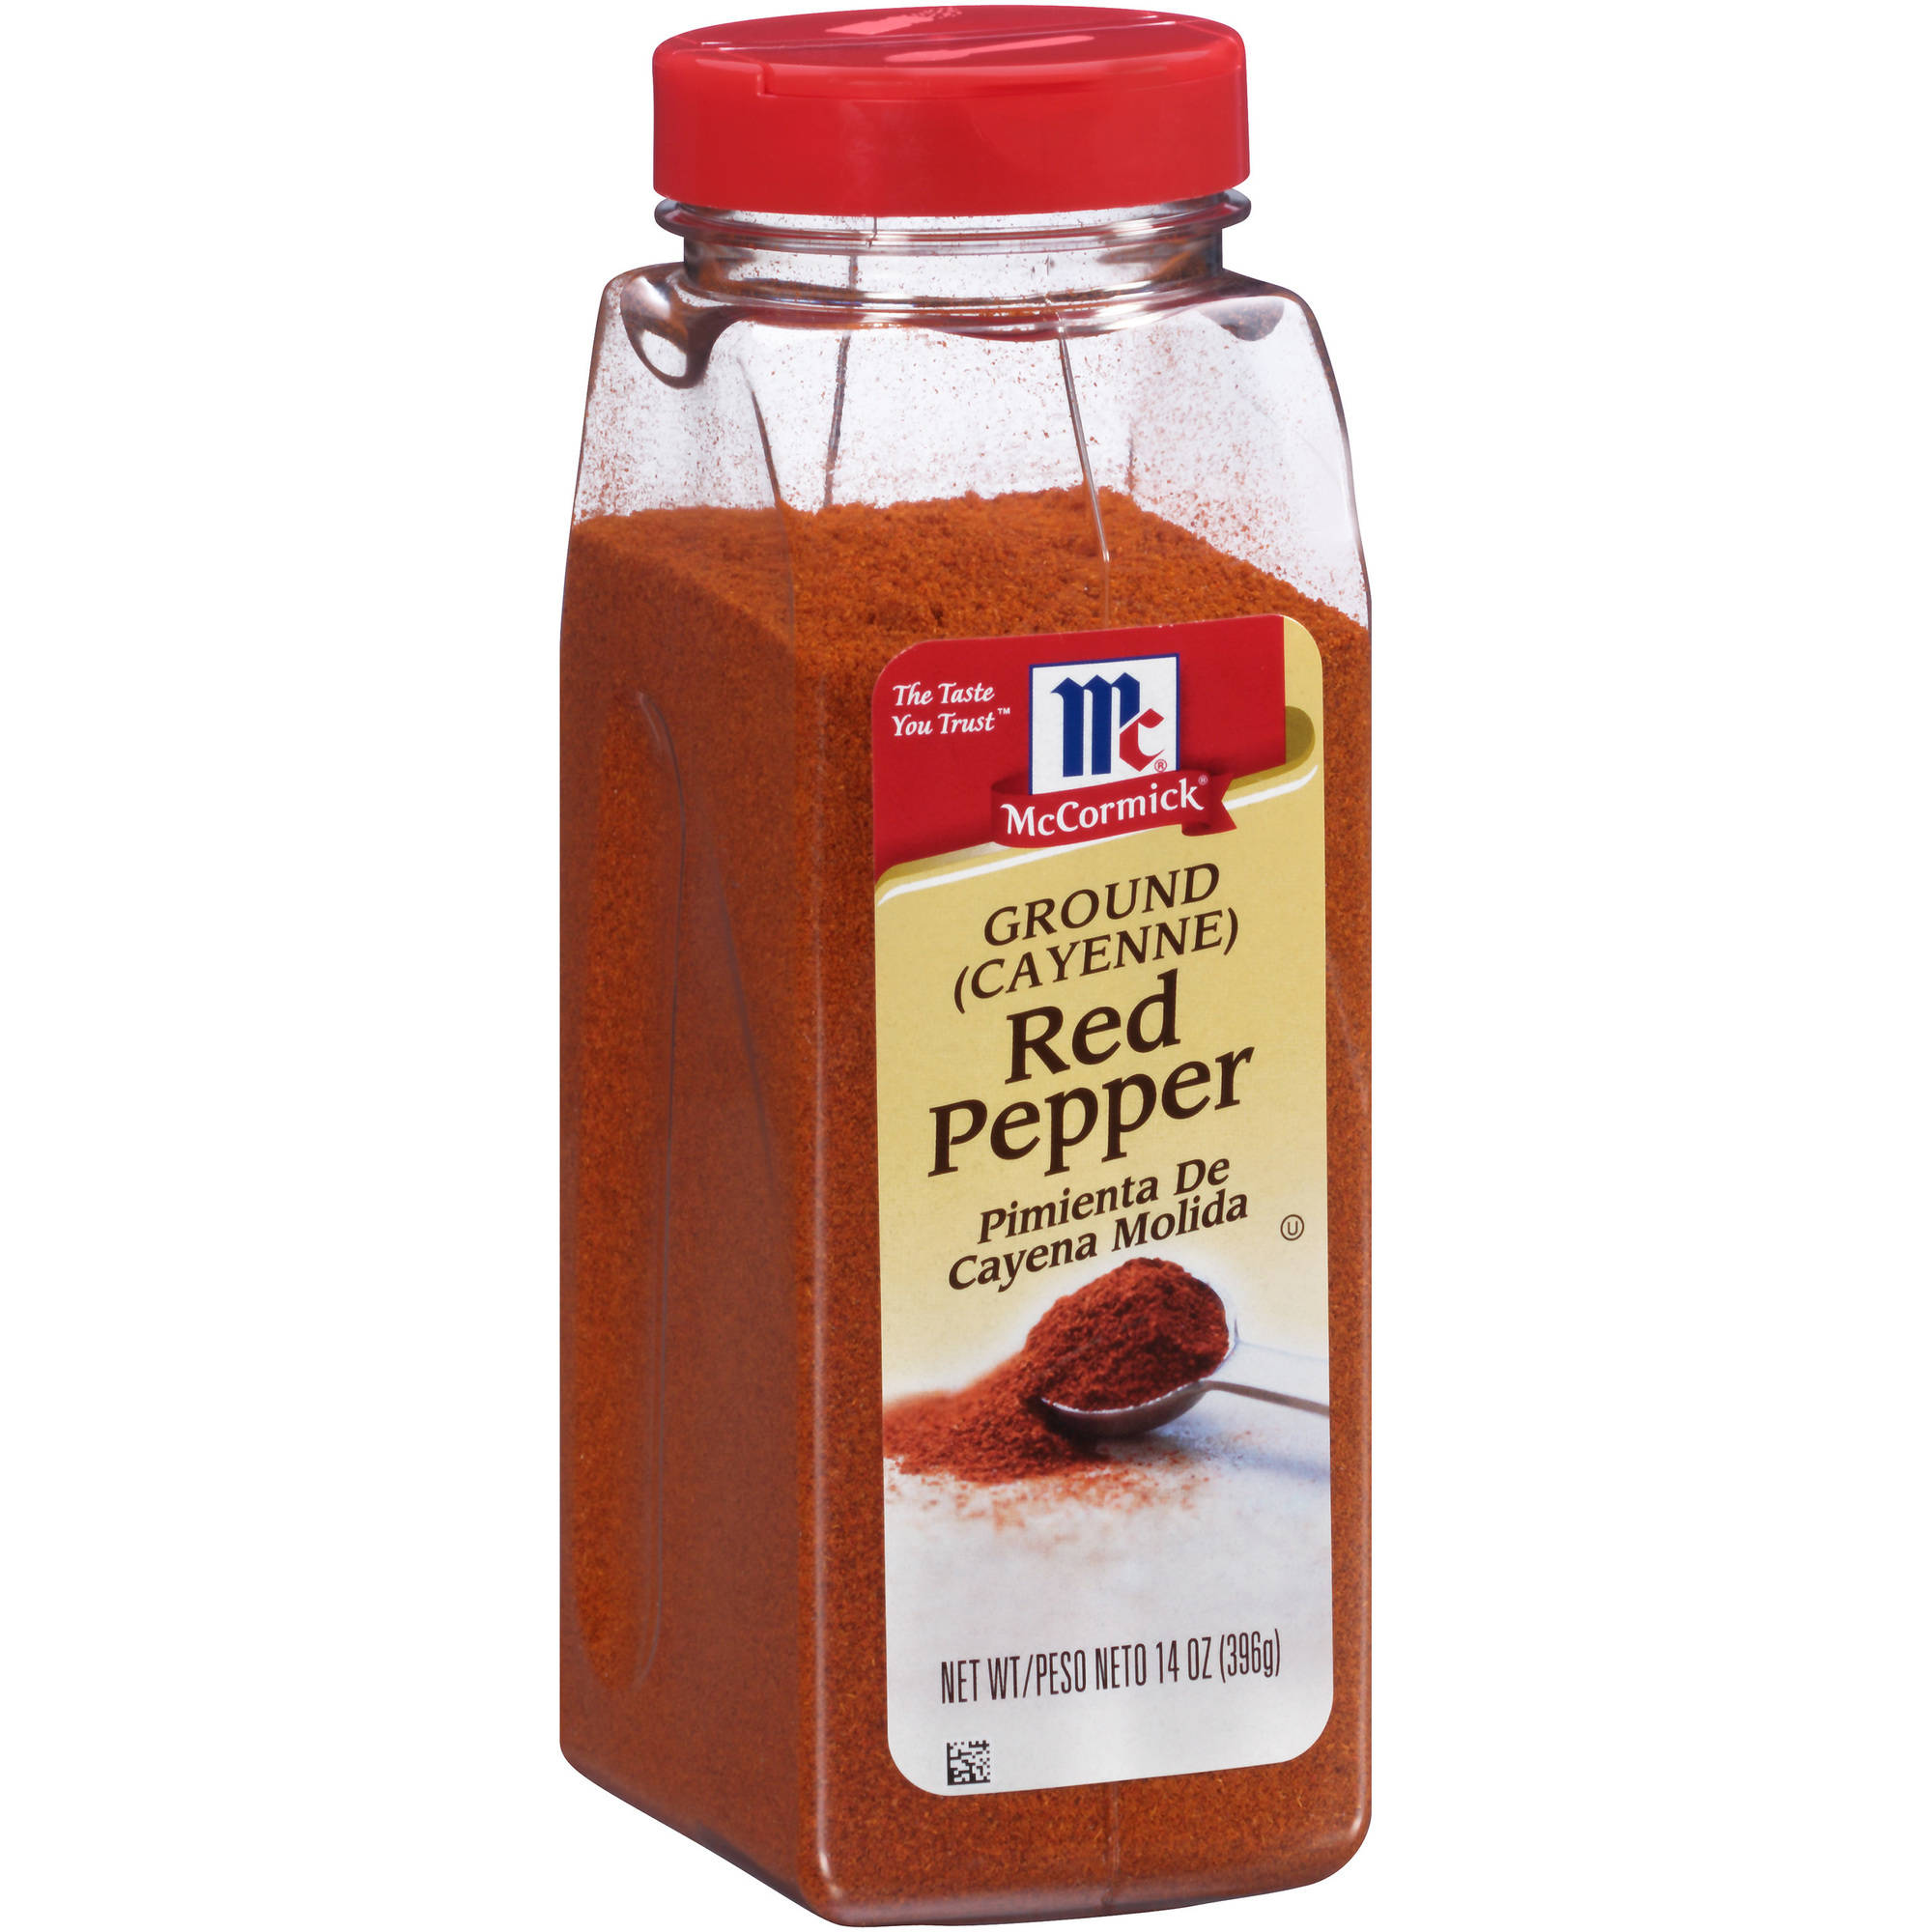 McCormick Ground (Cayenne) Red Pepper, 14 oz